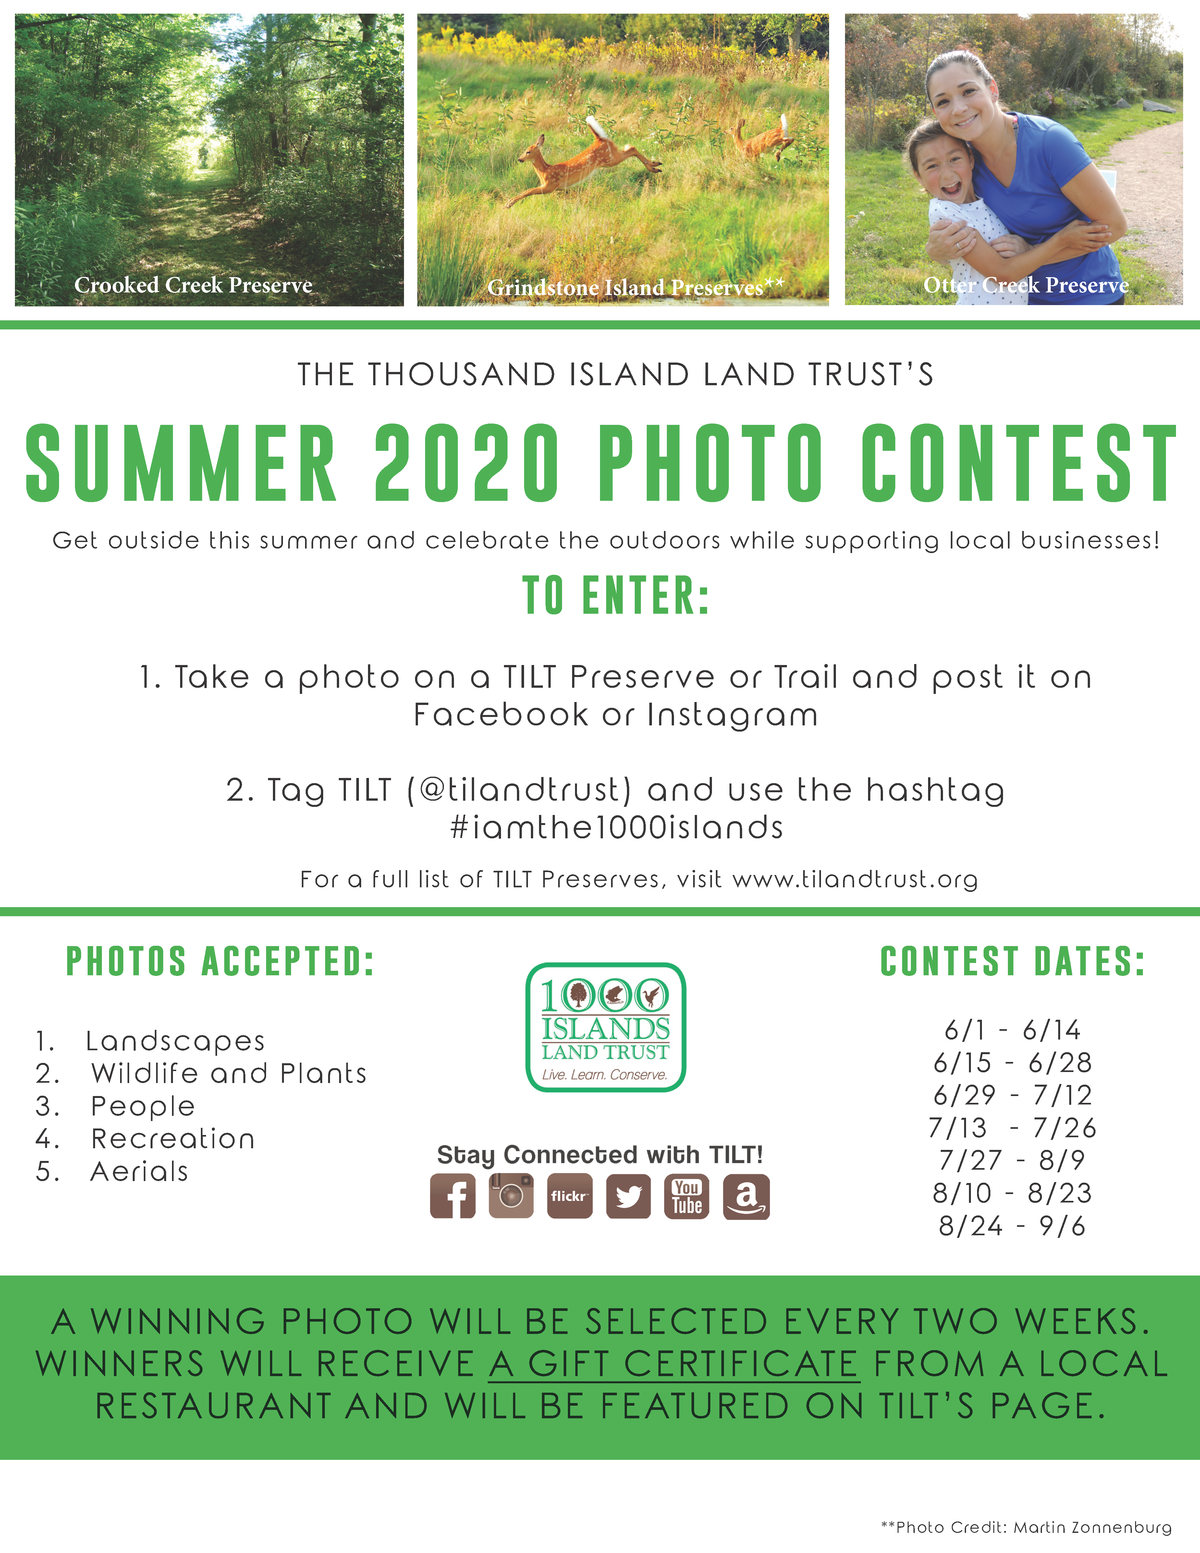 Summer 2020 Photo Contest